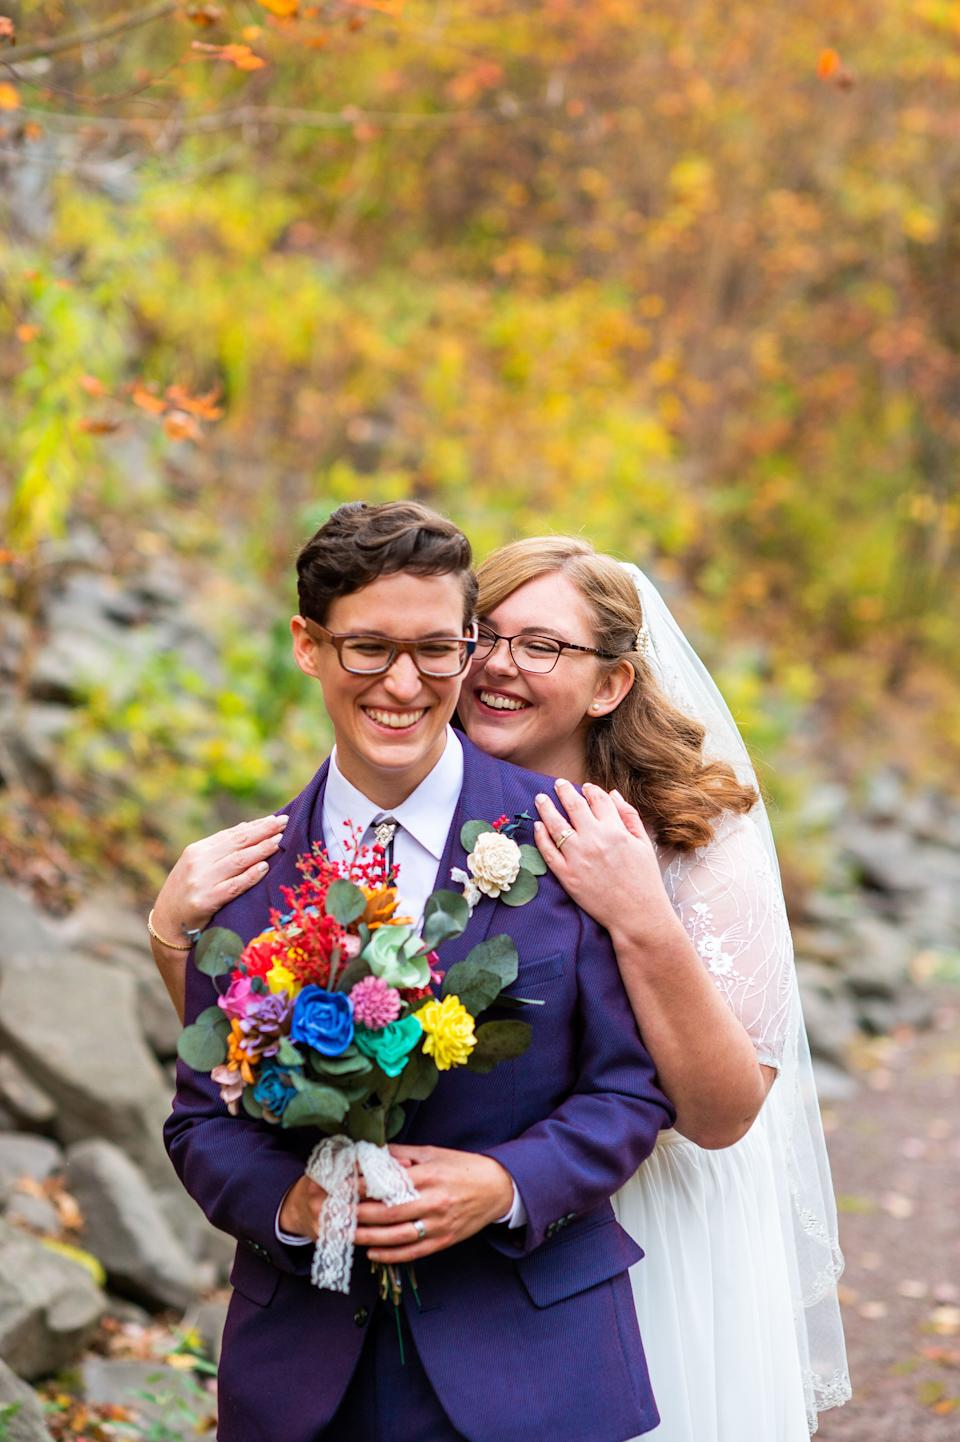 """They exchanged vows at the base ofStratton Falls in Roxbury, New York. (Photo: <a href=""""https://denuevaphoto.com/"""" target=""""_blank"""">De Nueva Photography </a>)"""